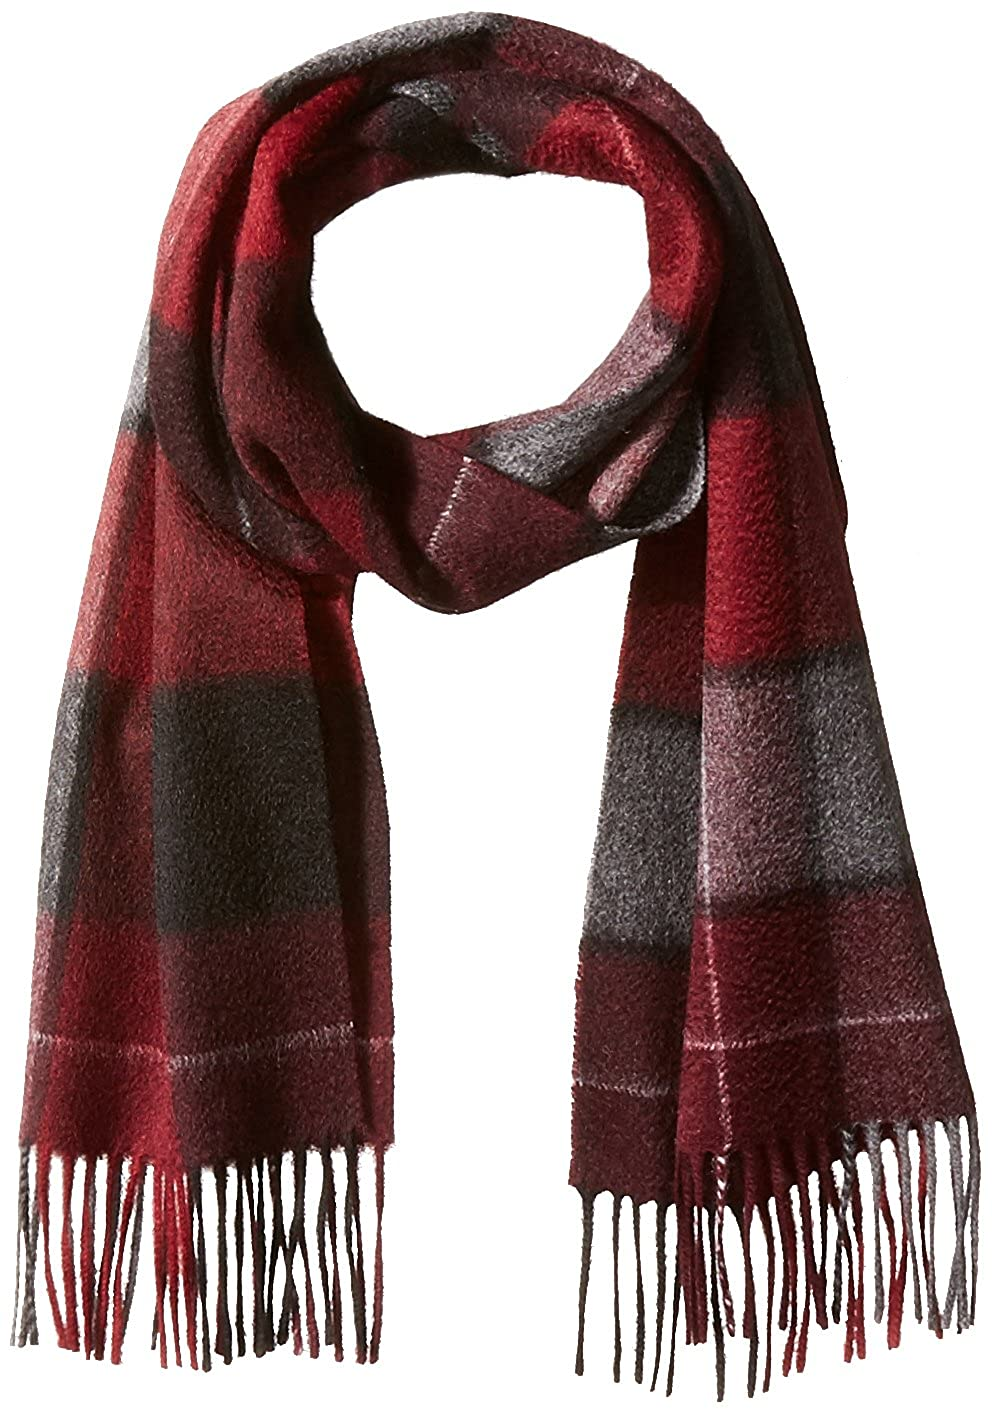 Phenix Cashmere Men's Cashmere Large Checkered Plaid Scarf Port/Grey One Size SCW-2910